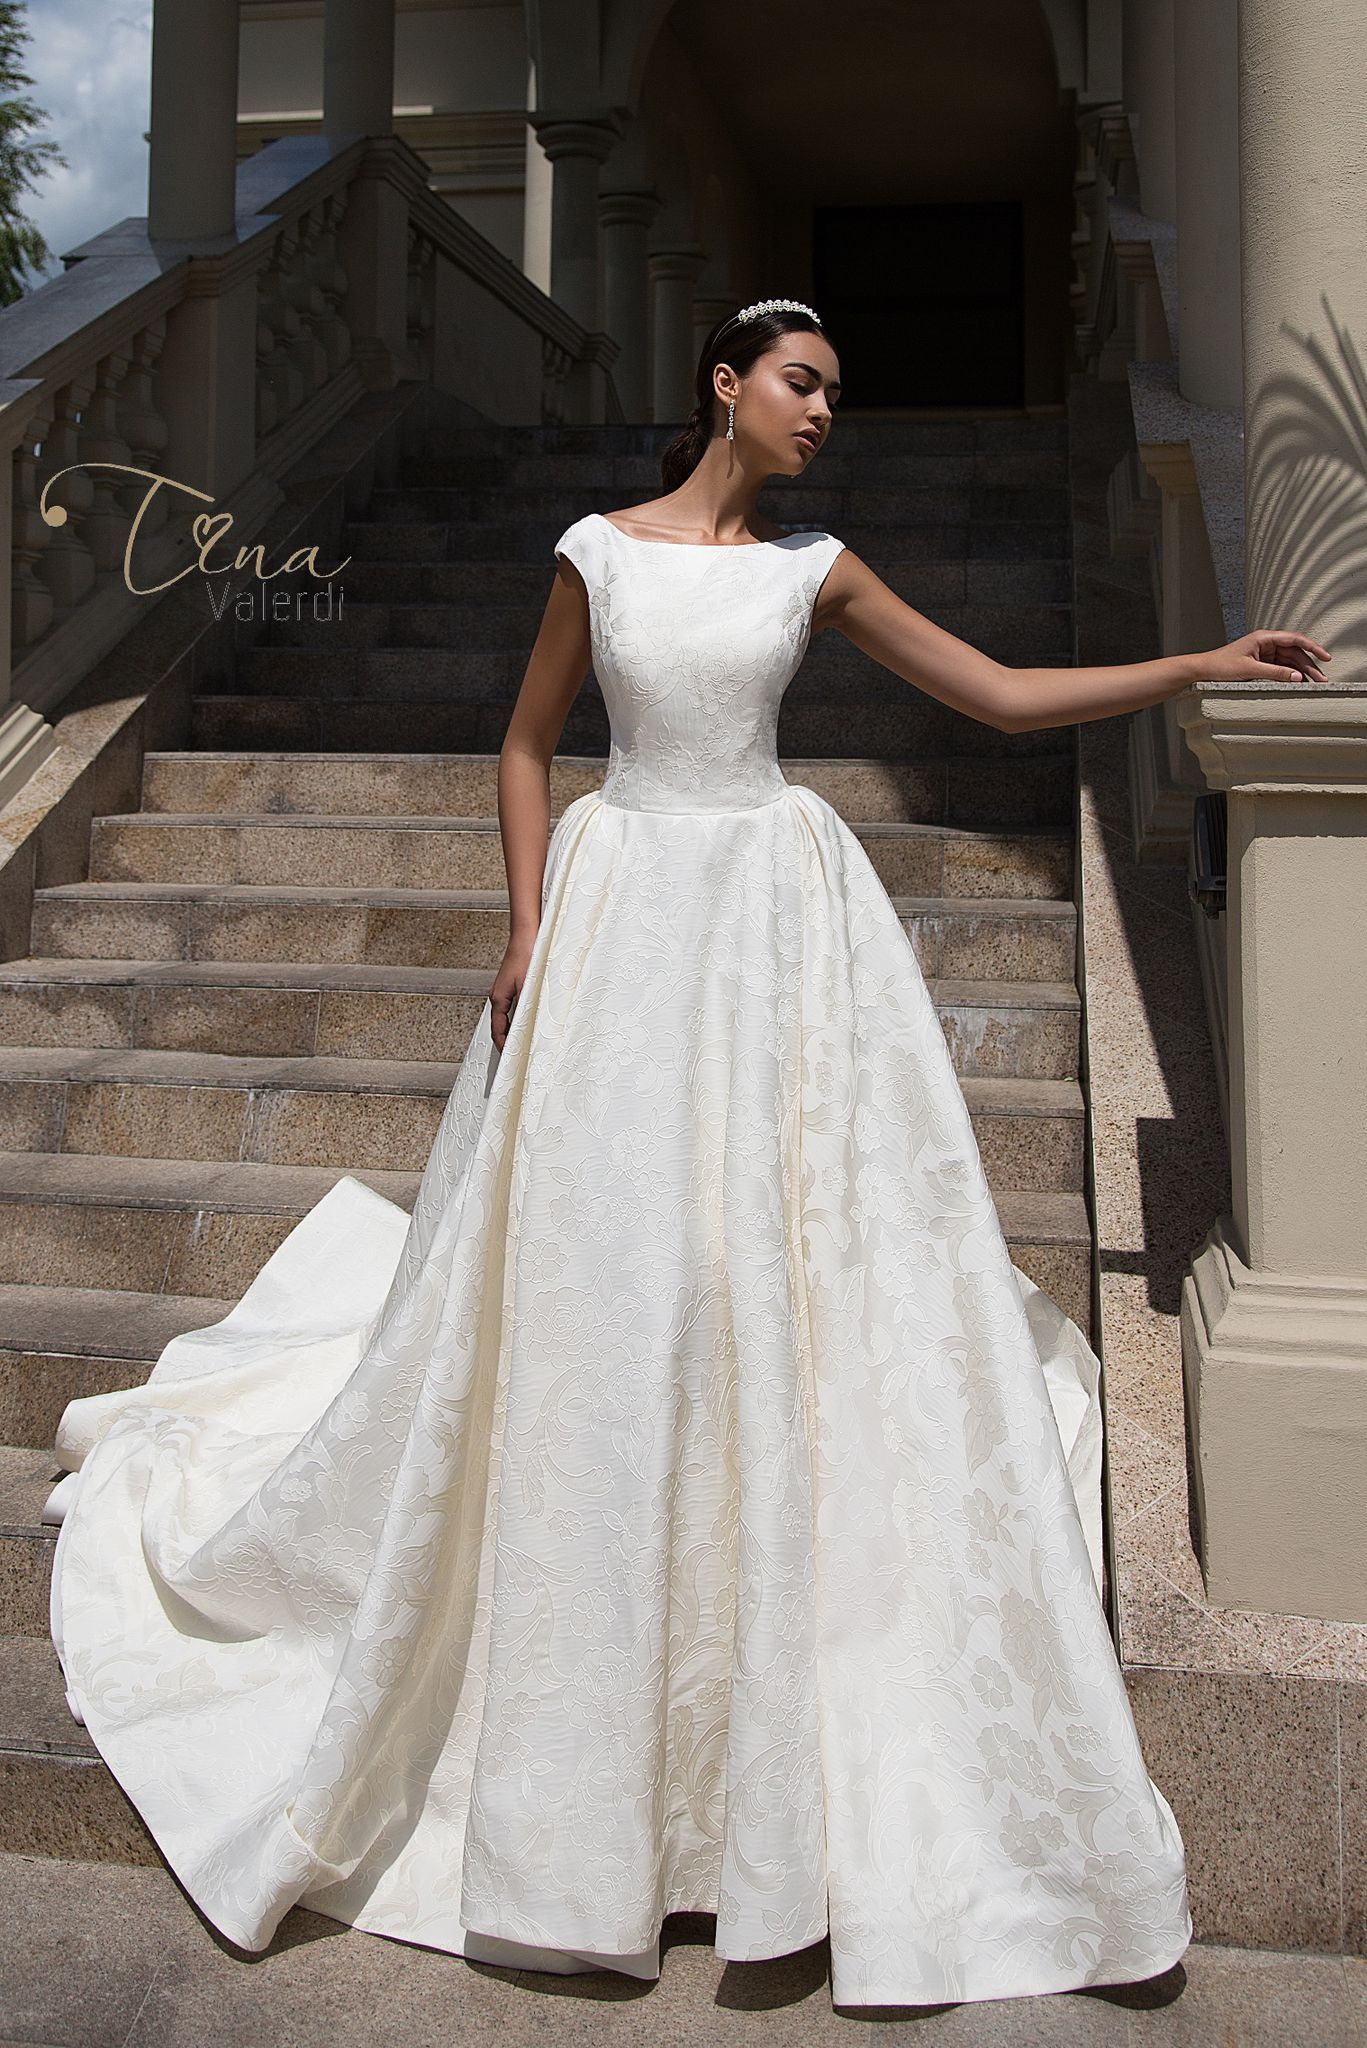 b50c190017cfe SOFIA DRESS BY TINA VALERDI. Find this Pin and more on BEST WEDDING DRESSES  in TAMPA BAY by Charme Gaby Bridal Boutique ...